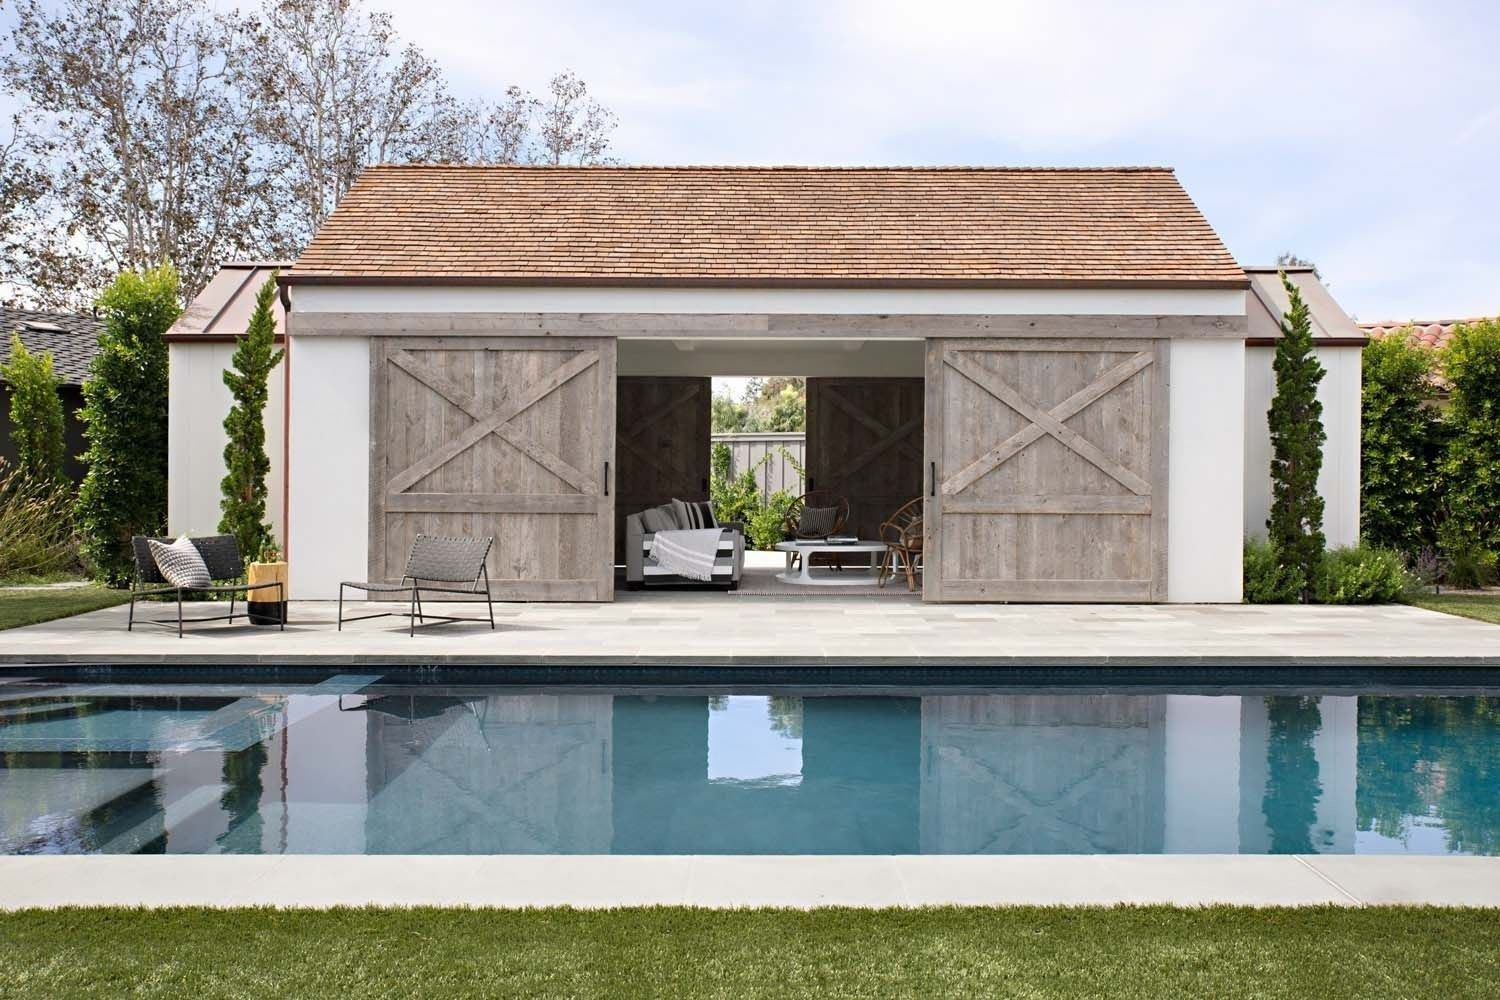 Modern Pool House Decorating Ideas On A Budget15 Modern Pool House Pool House Designs Modern Pools